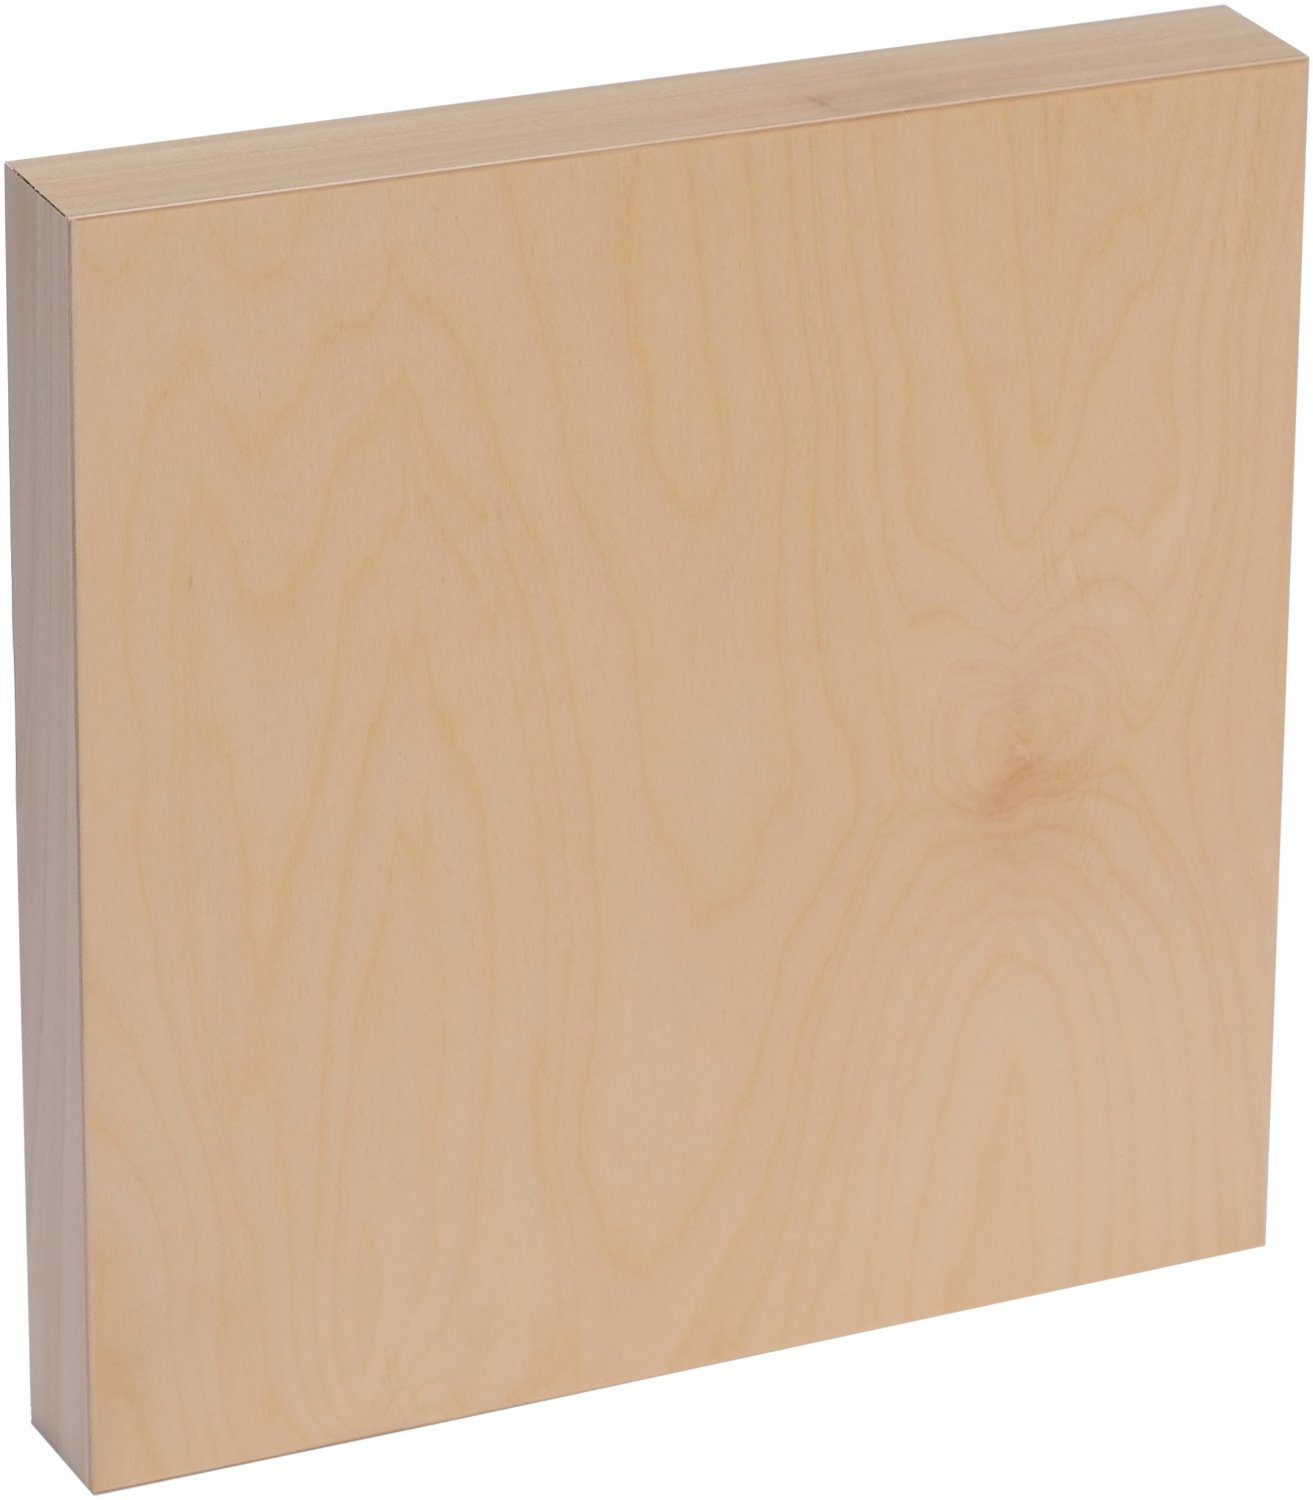 Birch wood panels